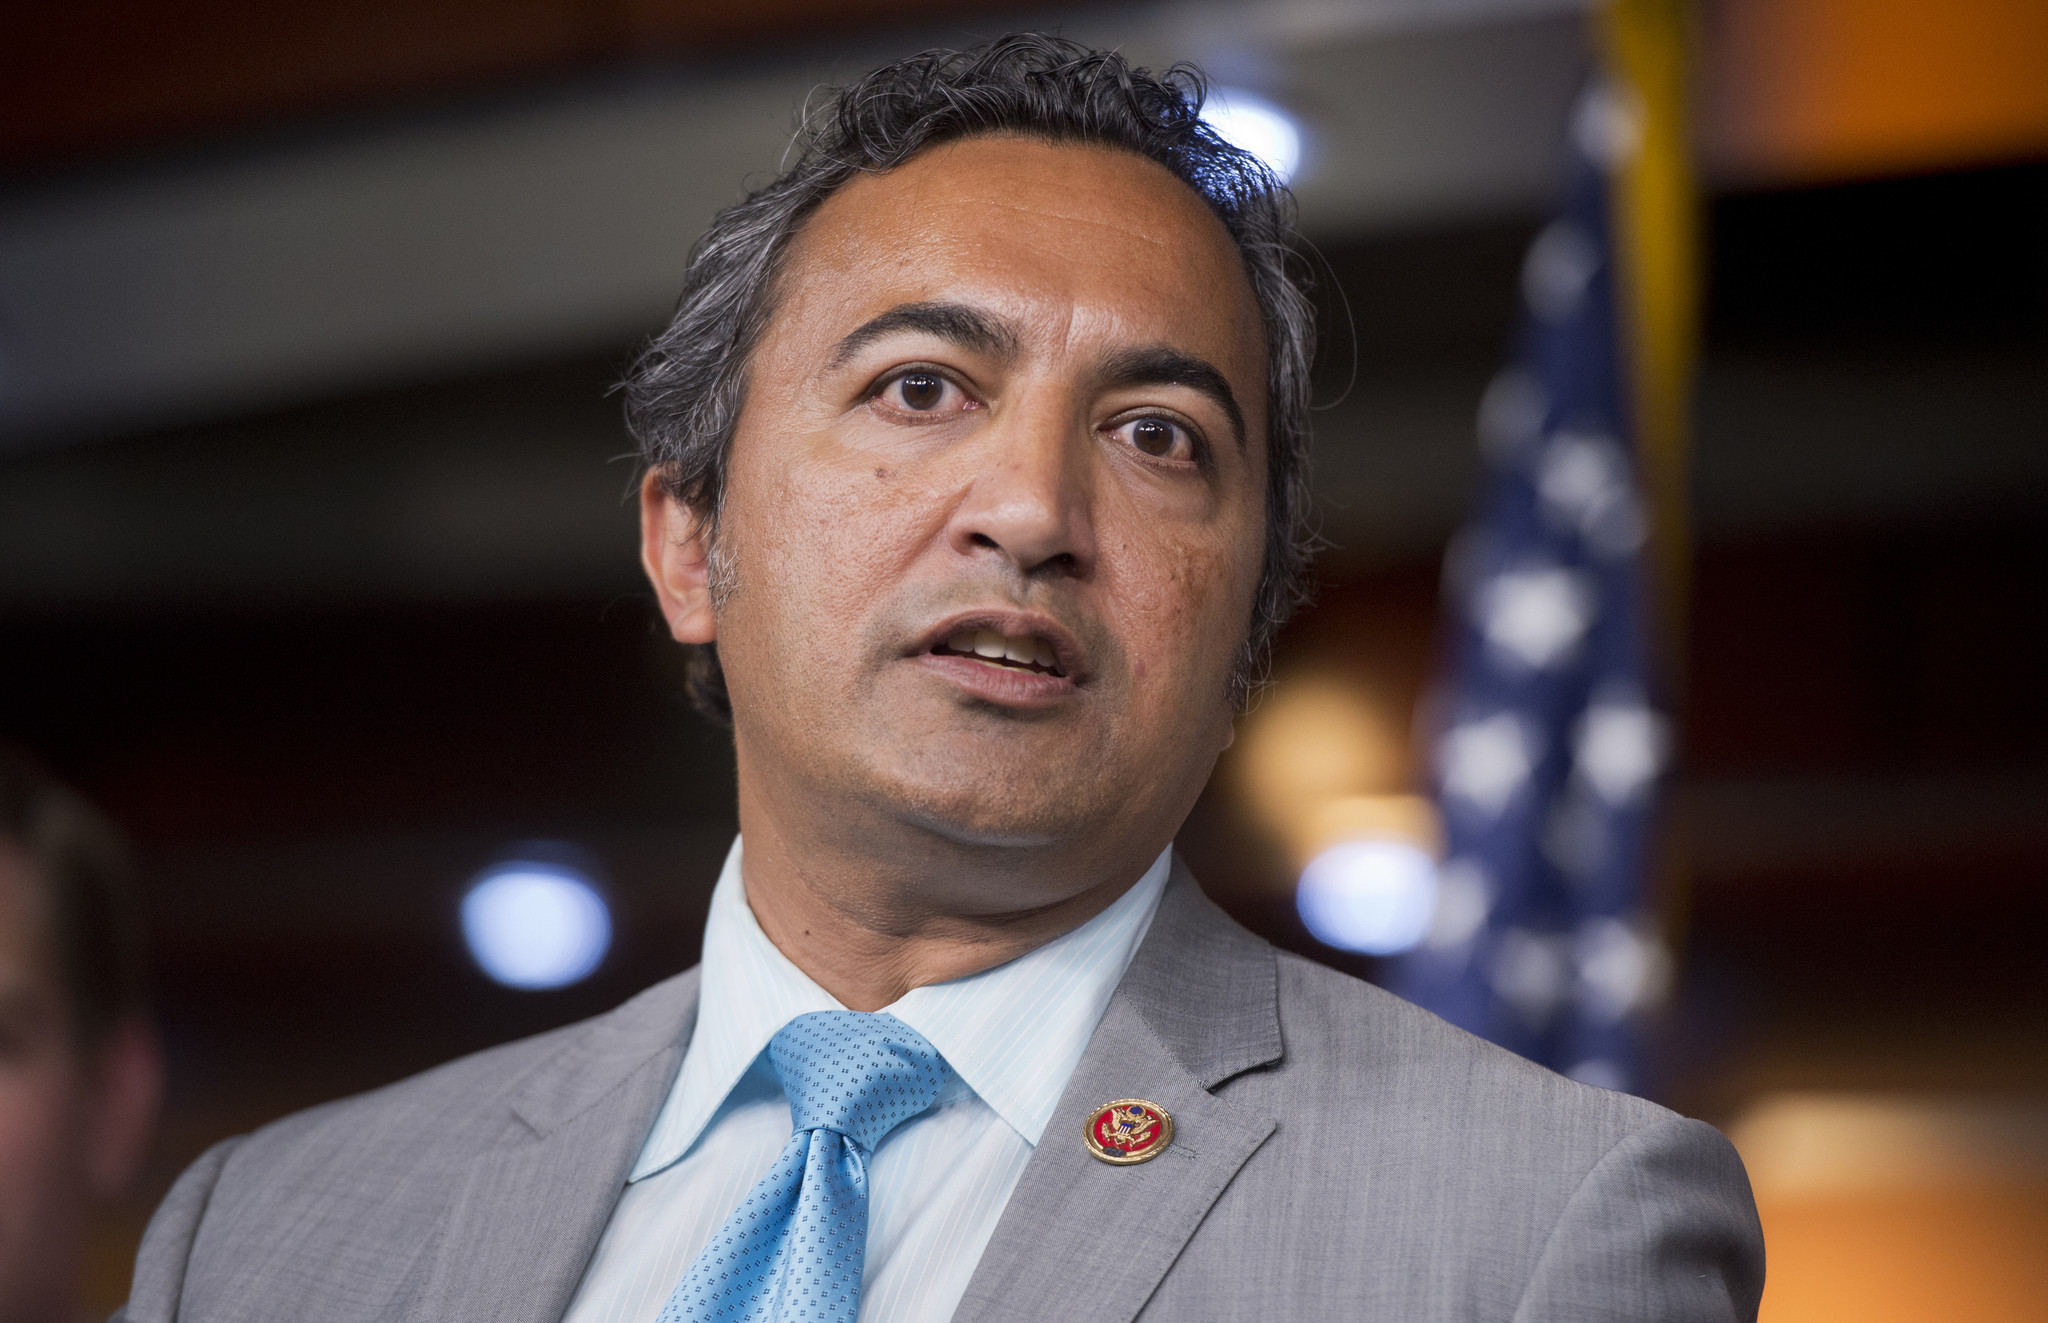 Rep. Ami Bera (D-Elk Grove) says President Trump ought to be censured over his comments about the violence in Charlottesville, Va. (Tom Williams / CQ Roll Call)